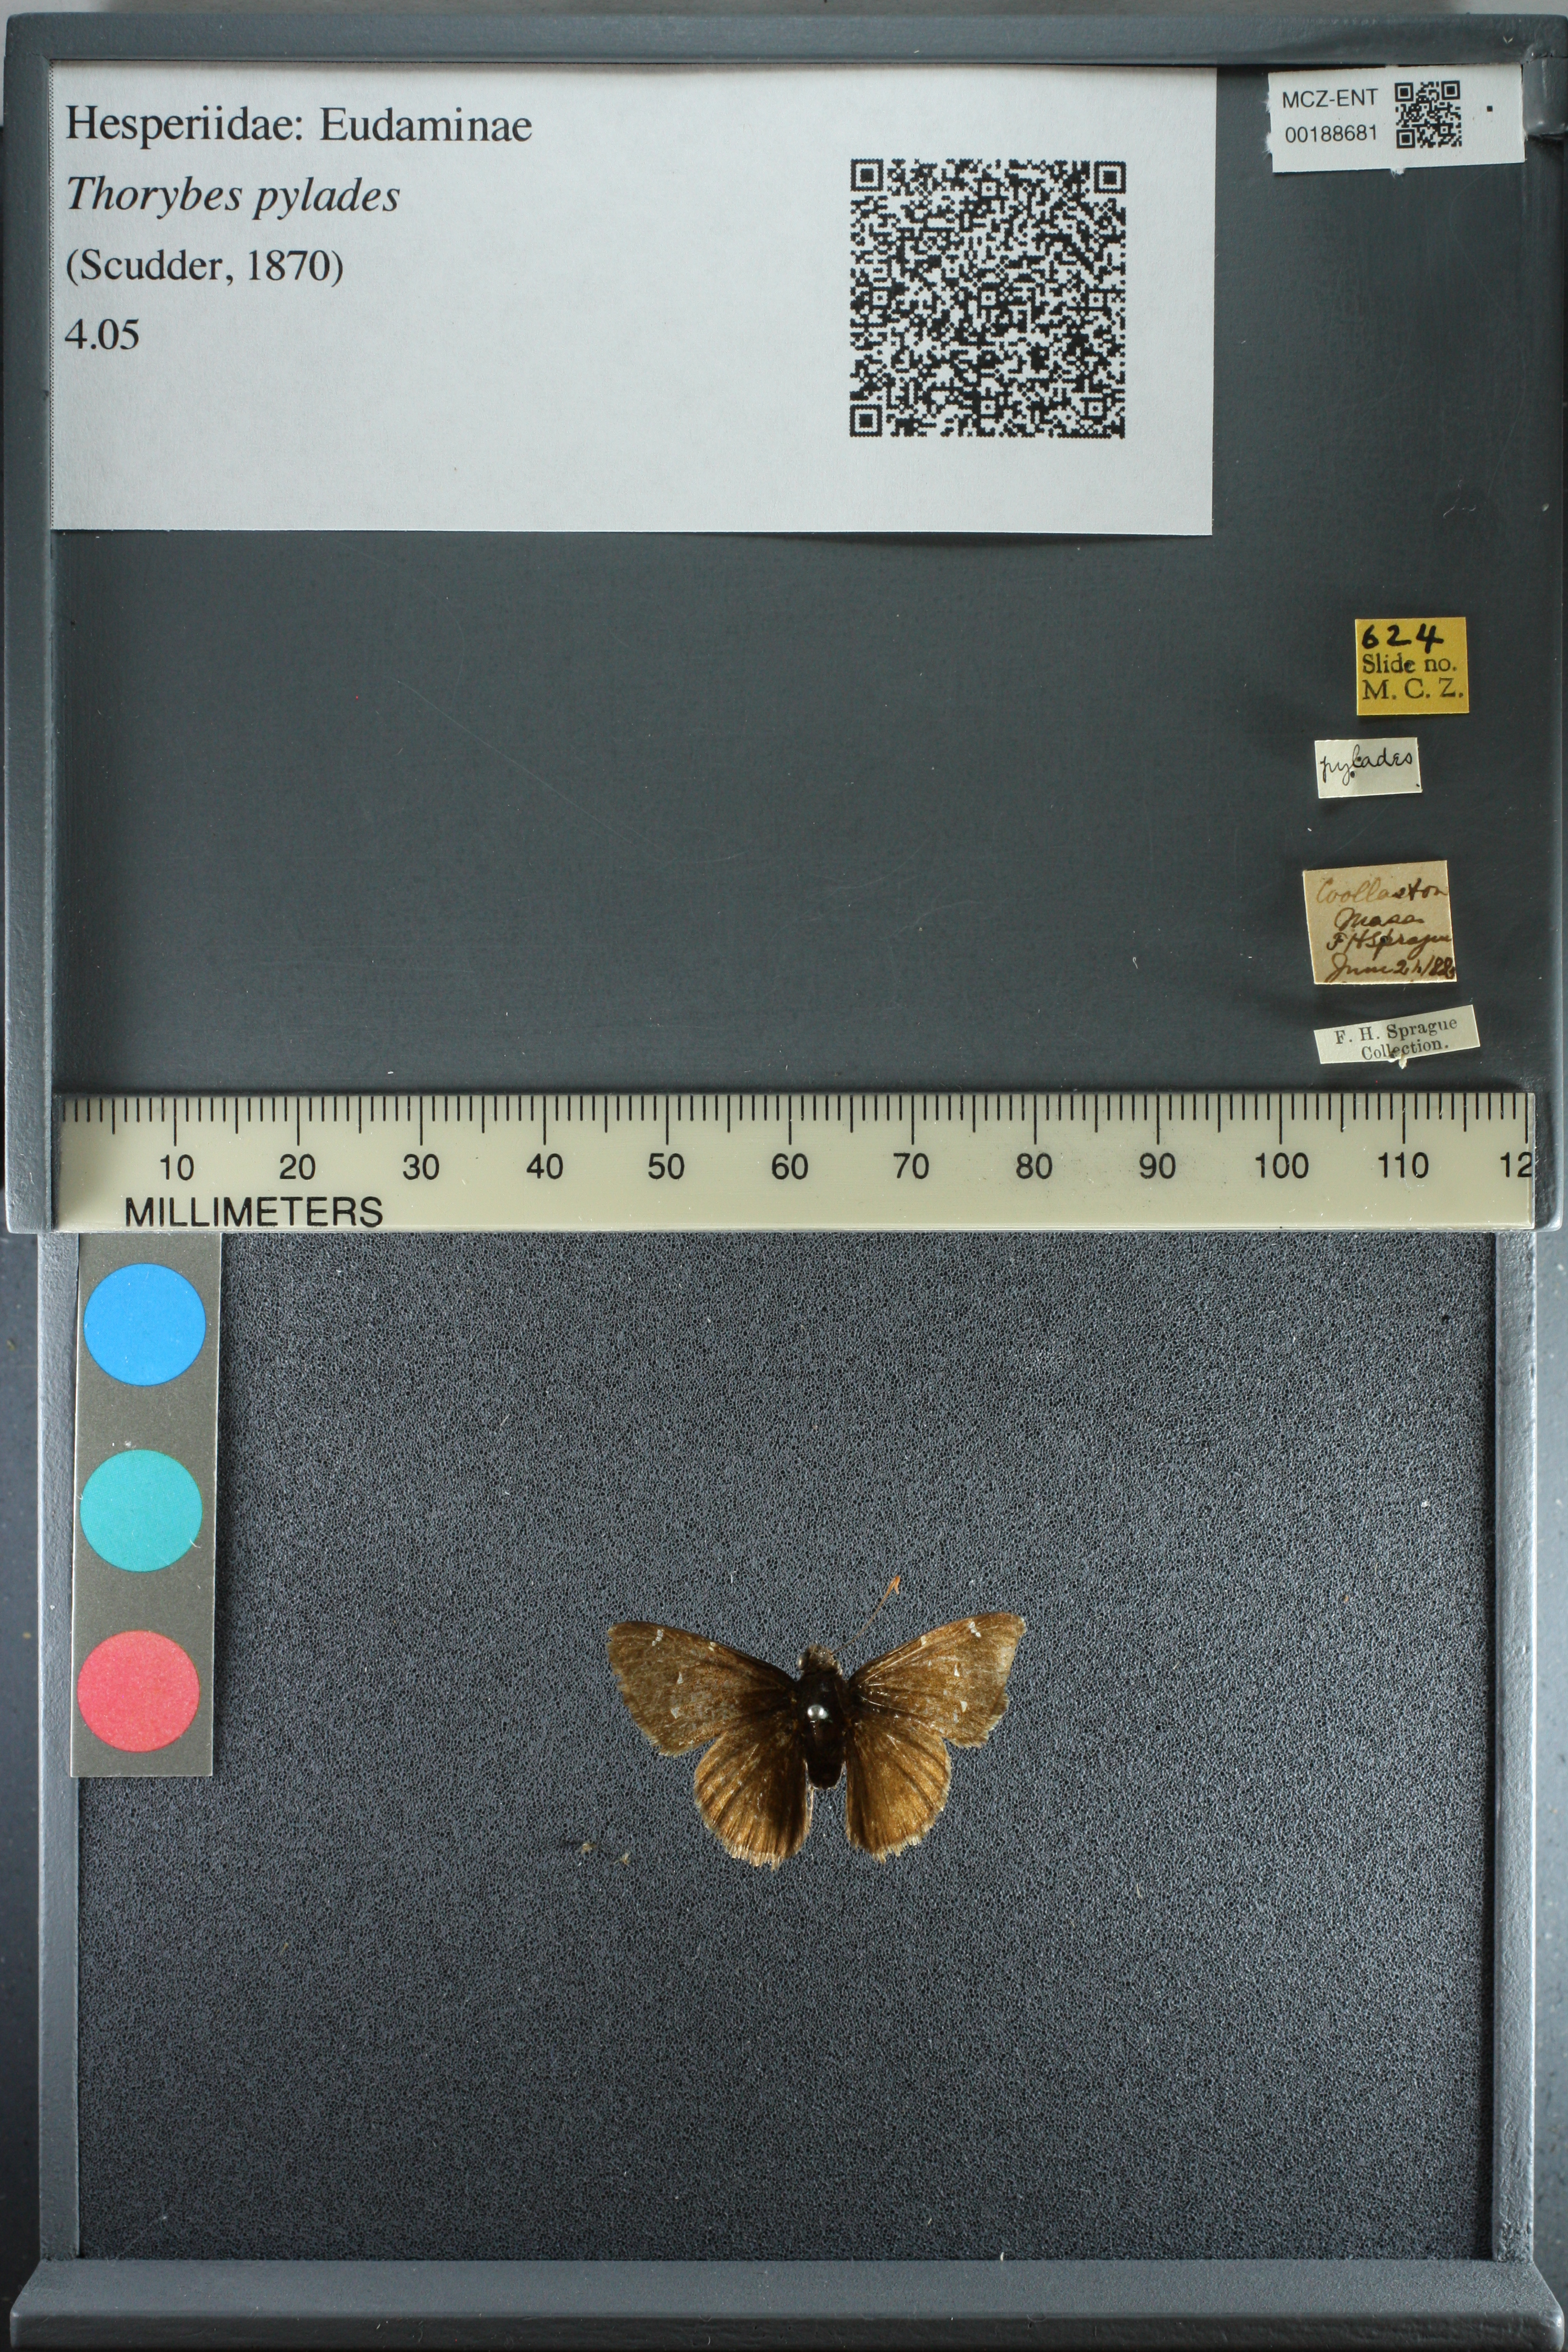 Media of type image, shows cataloged_item. MCZ:Ent:188681 Identified as Cecropterus (Thorybes) pylades.